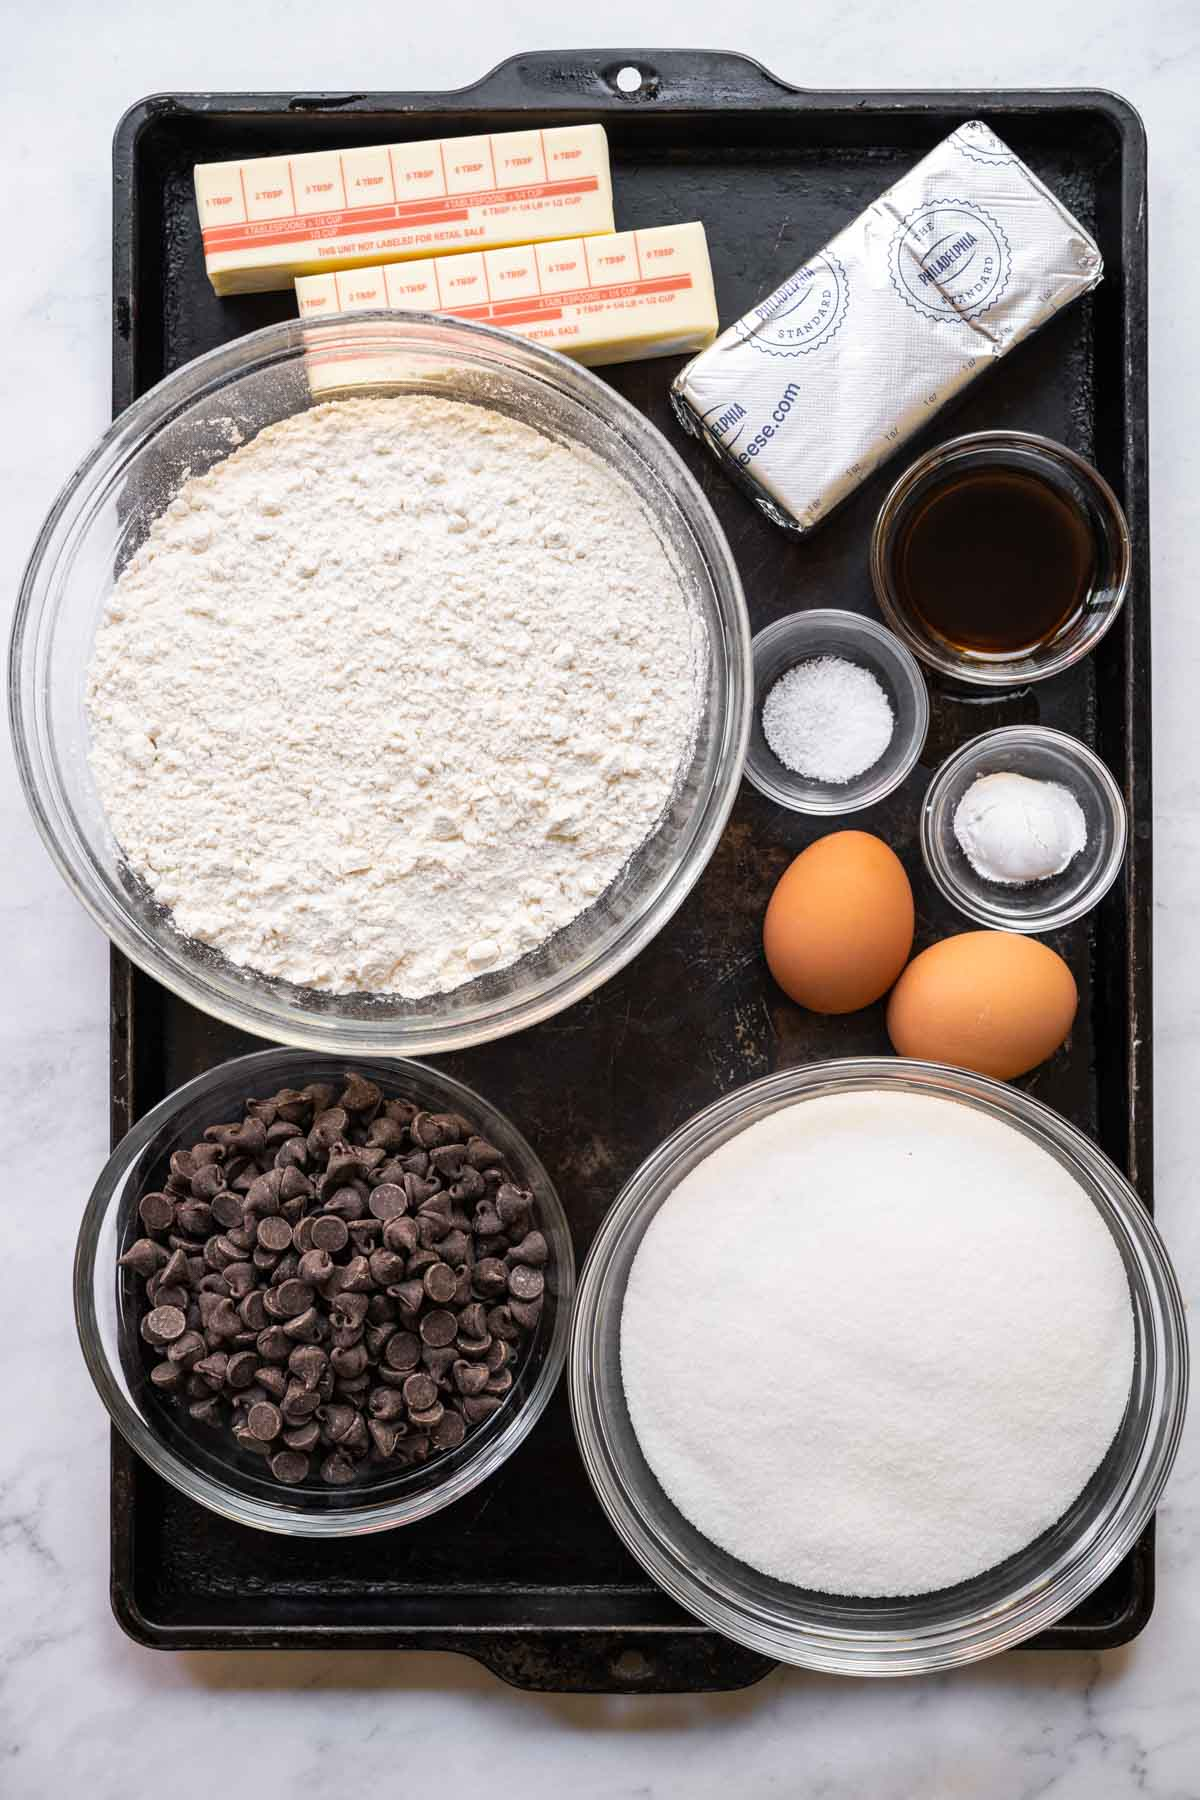 Ingredients for Cream Cheese Chocolate Chip Cookies in prep bowls